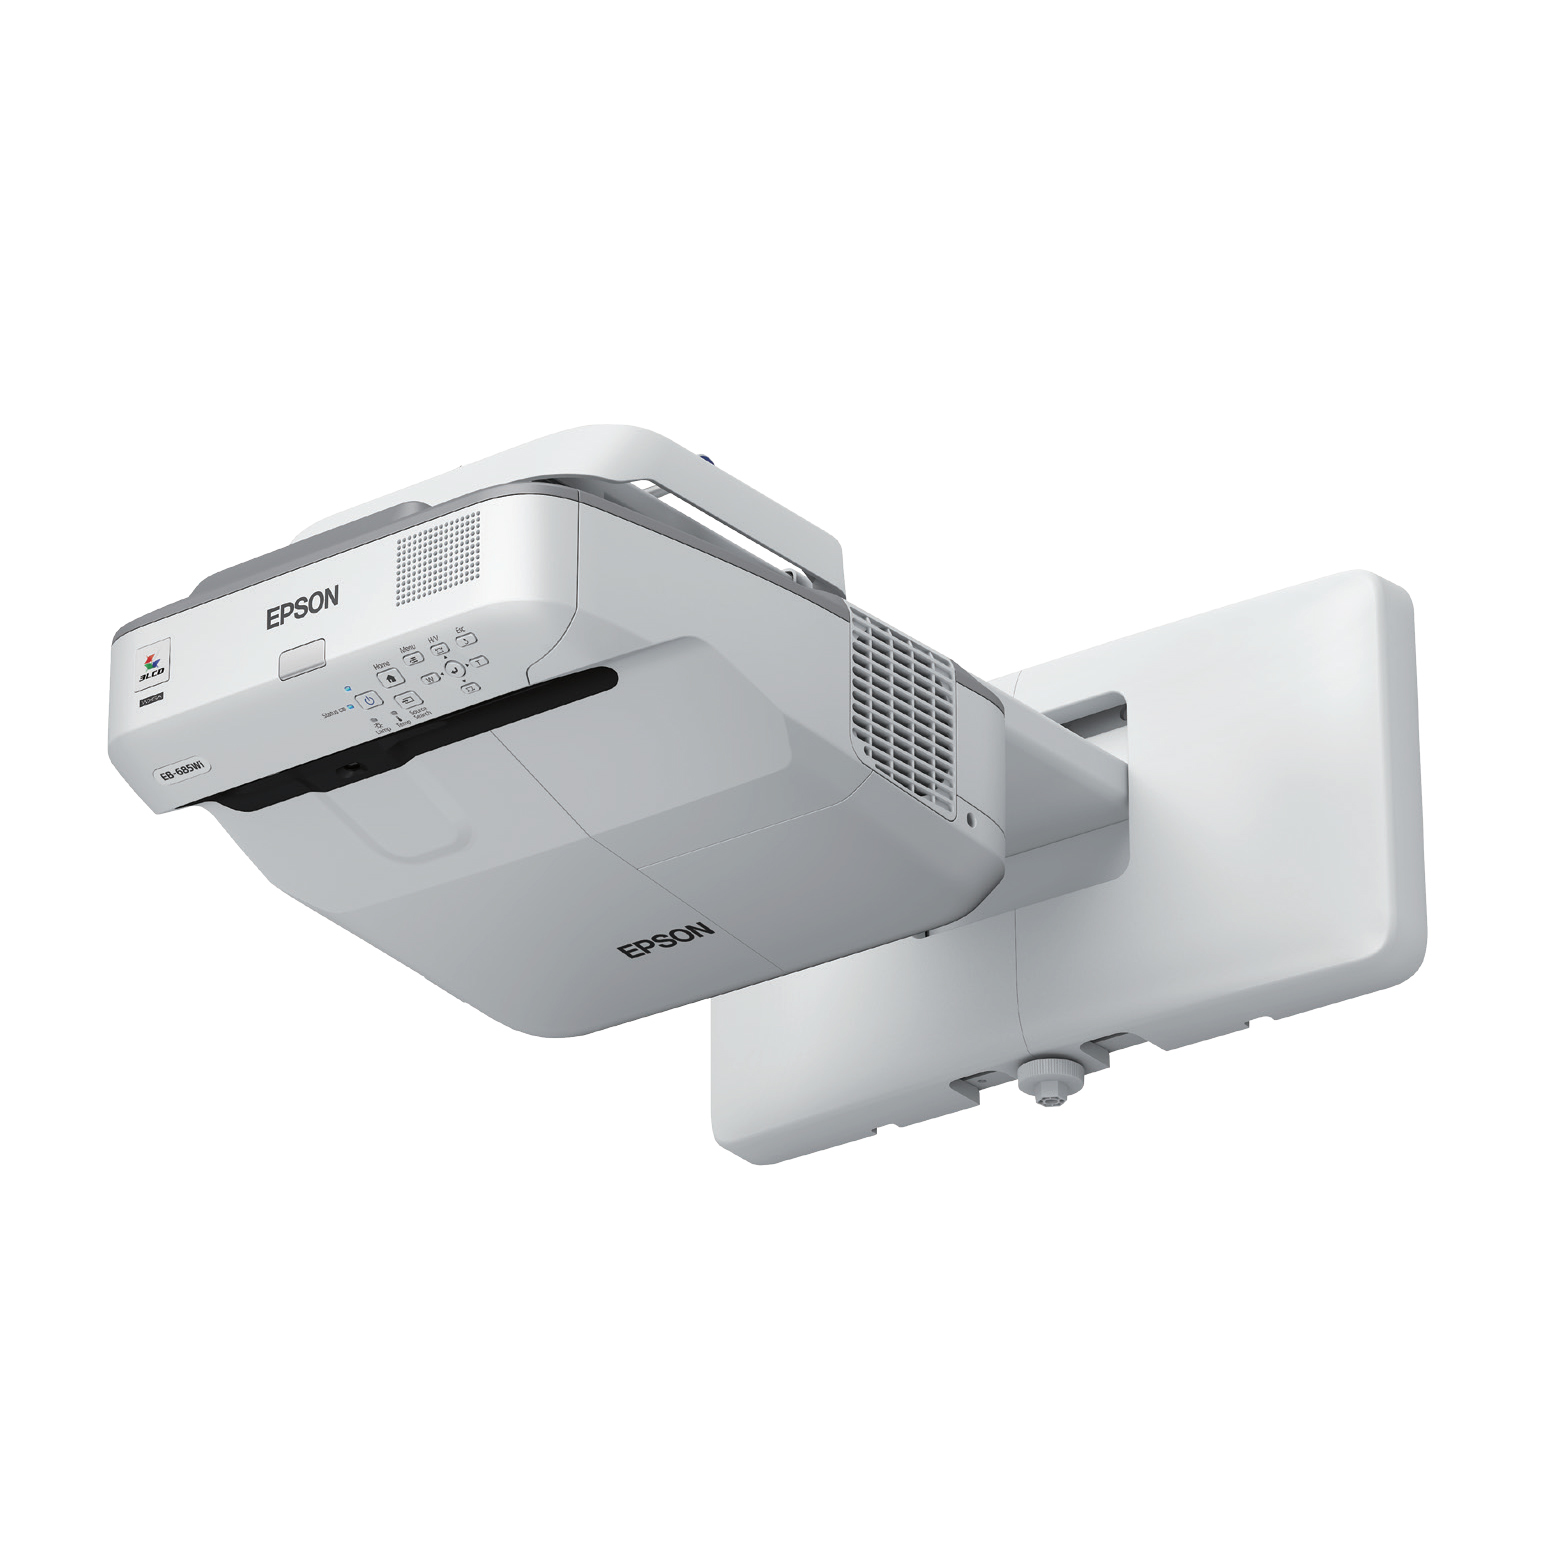 EPSON EB-685WI WALL-MOUNTED PROJECTOR 3500ANSI LUMENS 3LCD WXGA (1280X800) GREY,WHITE DATA